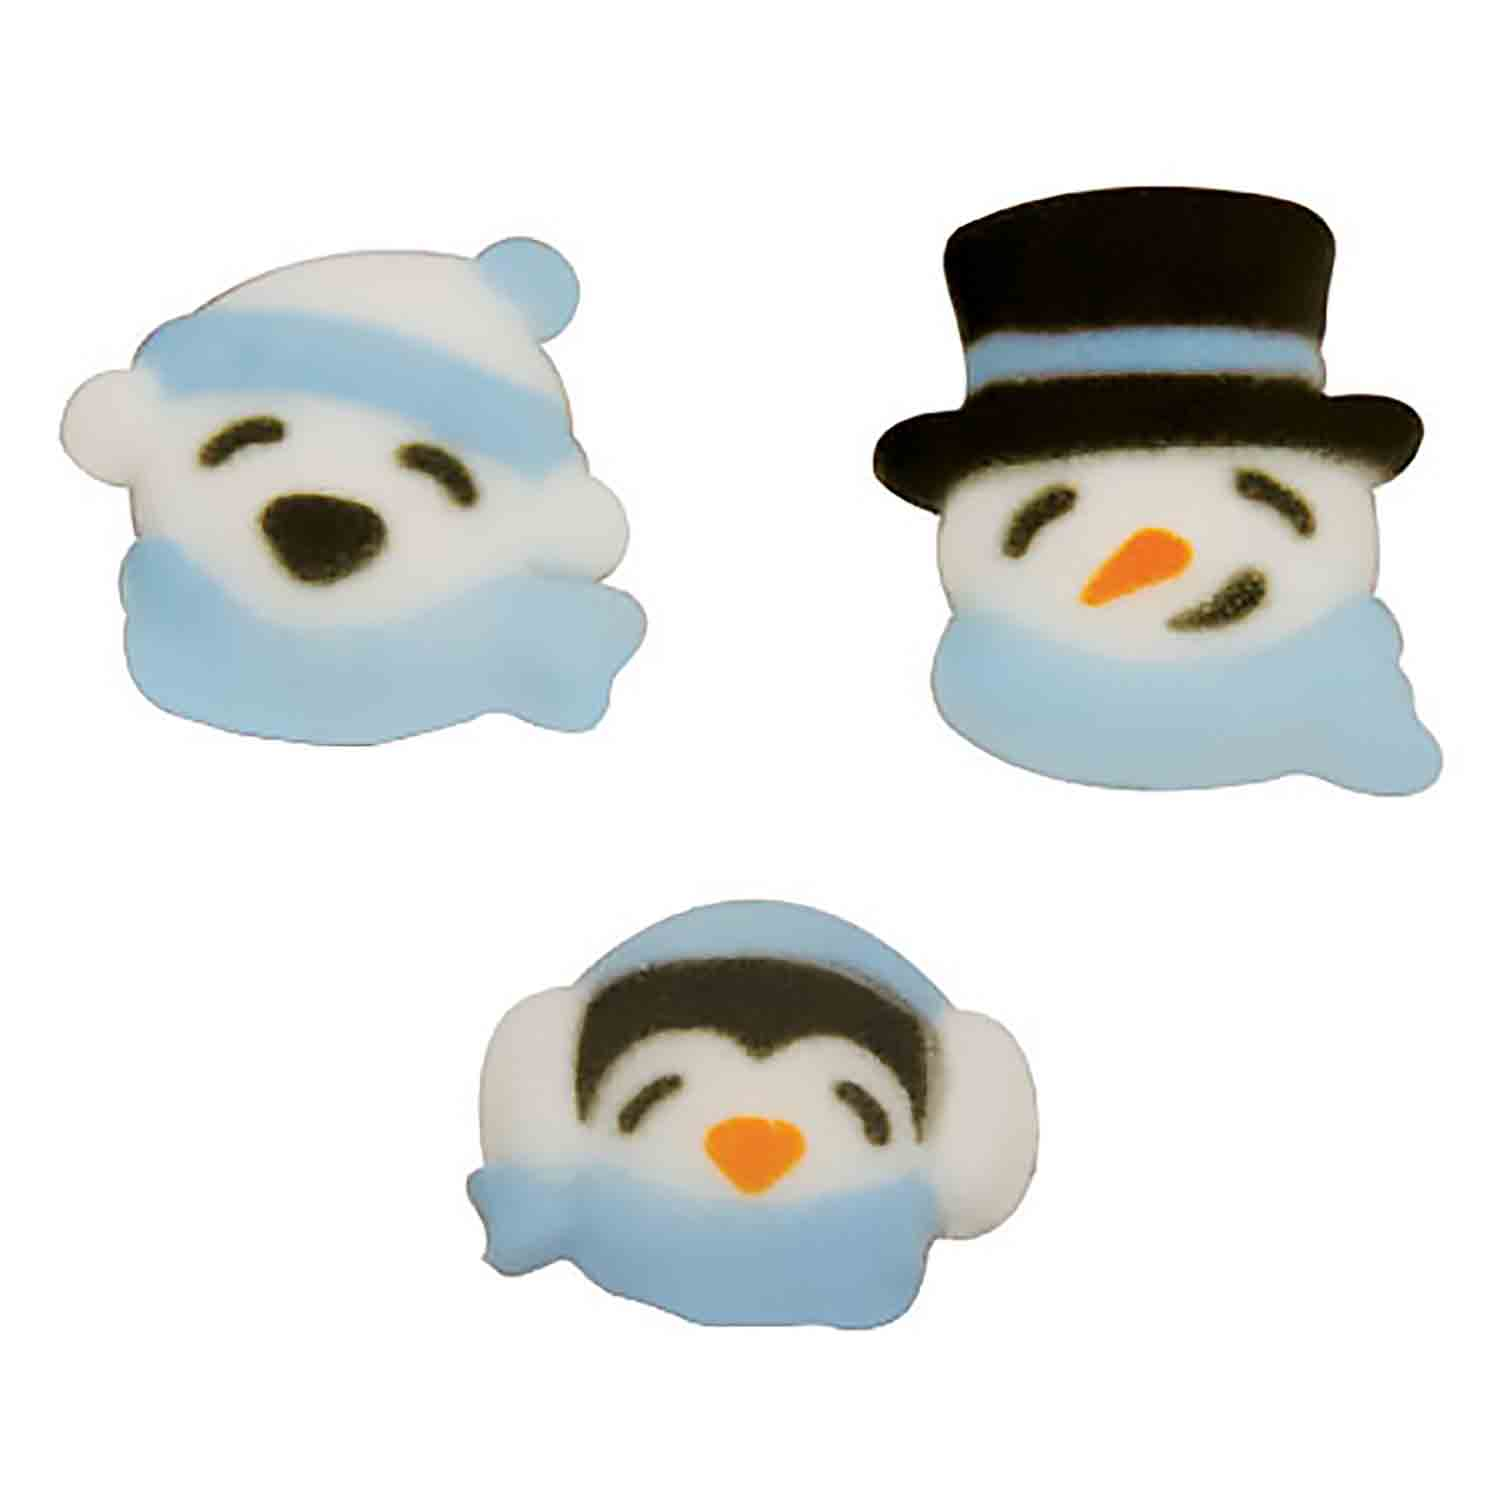 Dec-Ons® Molded Sugar - Cozy Winter Friends